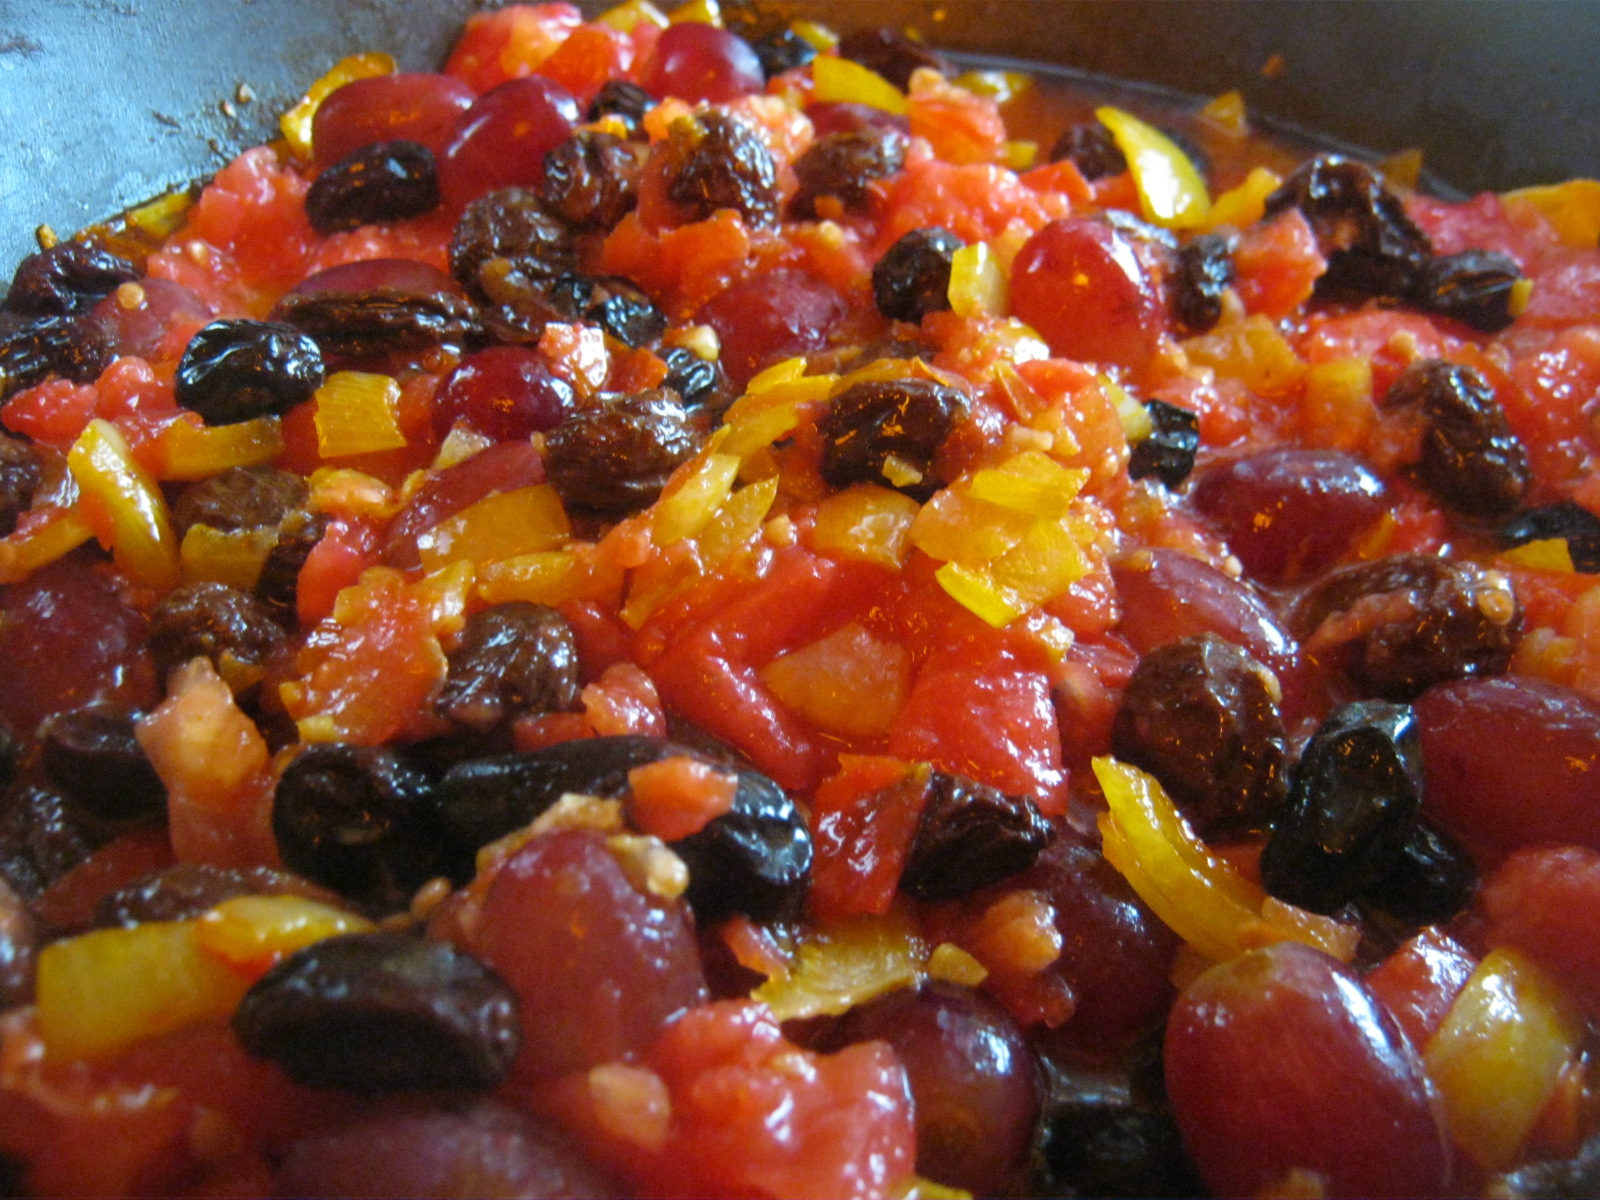 Enjoy this Spicy Cape Fruit dish and other casserole recipes